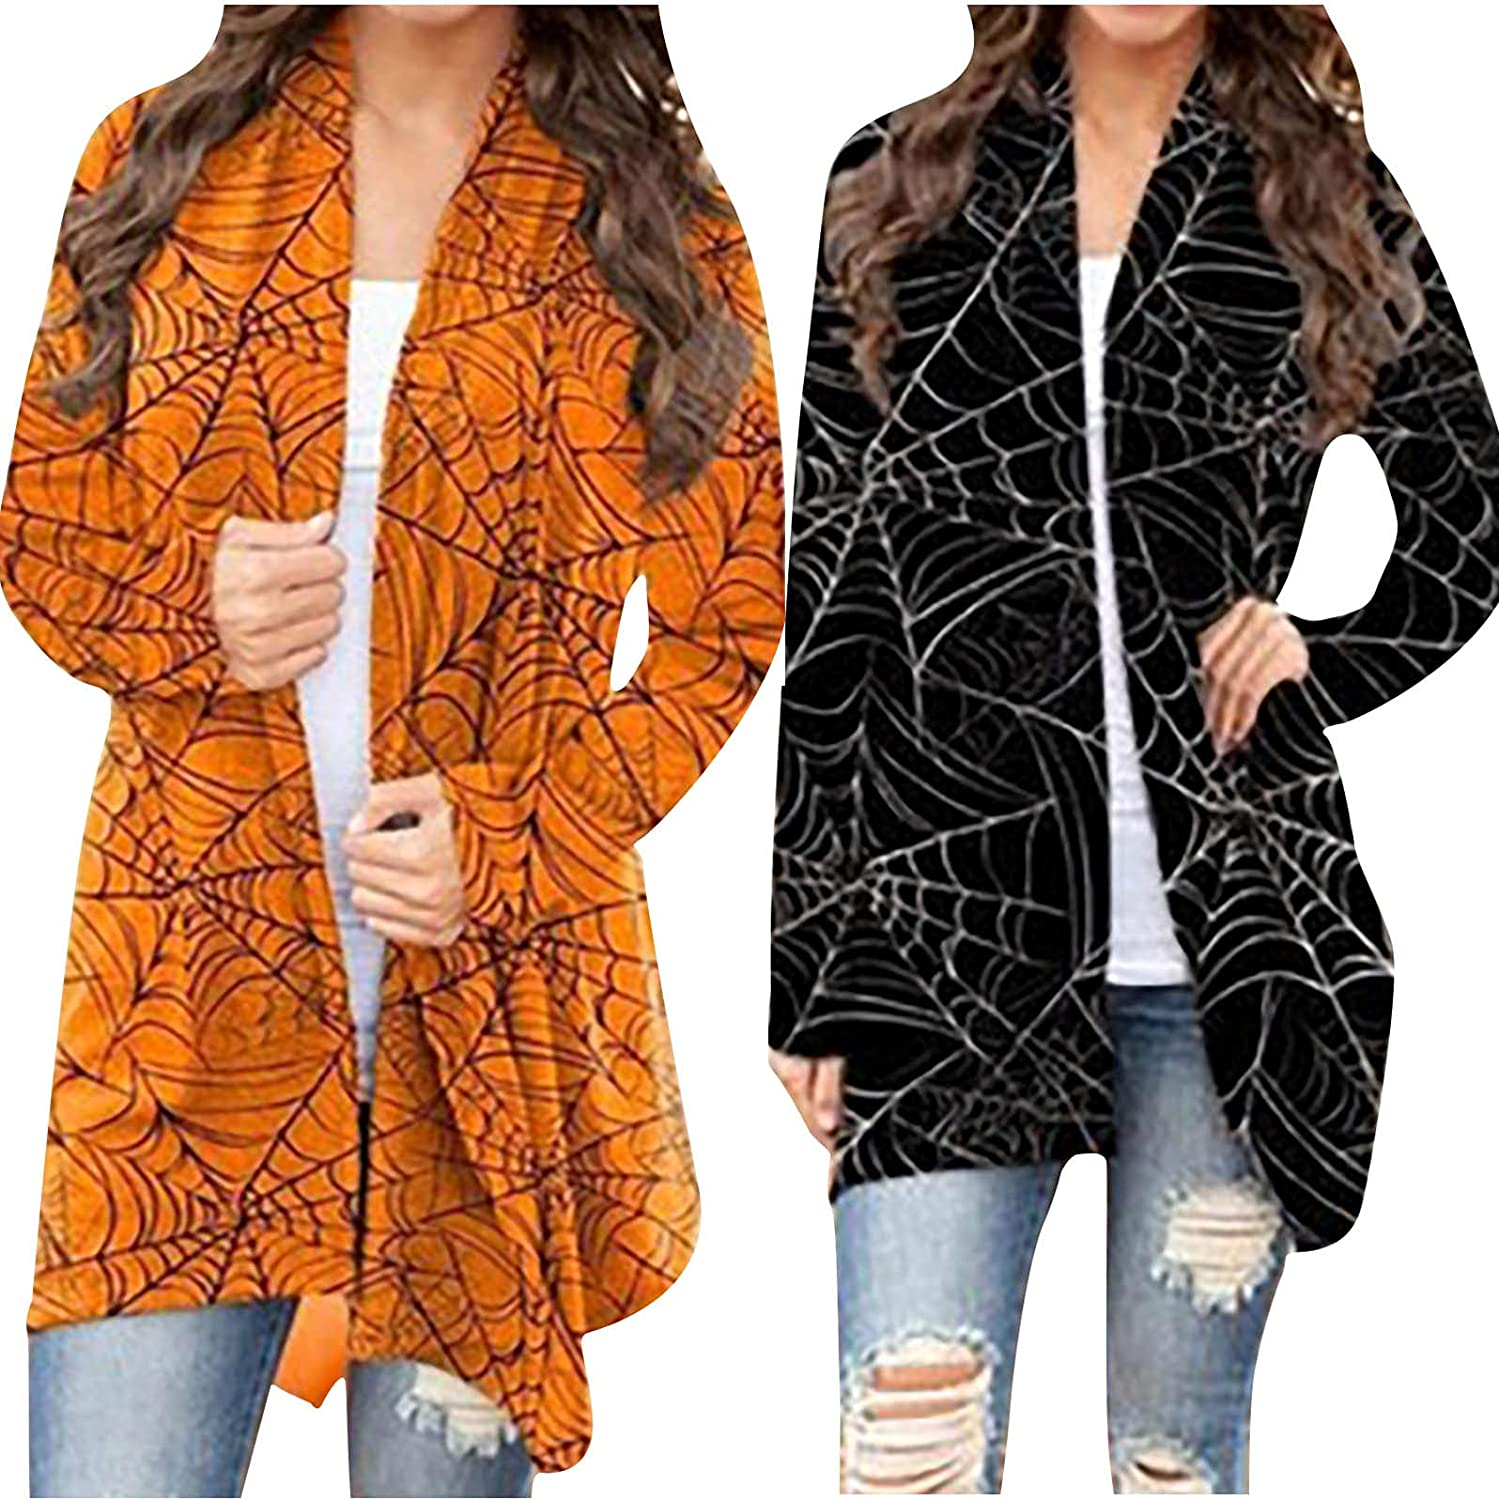 Halloween Cardigan for Women Trendy Long Sleeve Sweaters Cute Spider Web Graphic Coat Blouses Open Front Outwear Tops